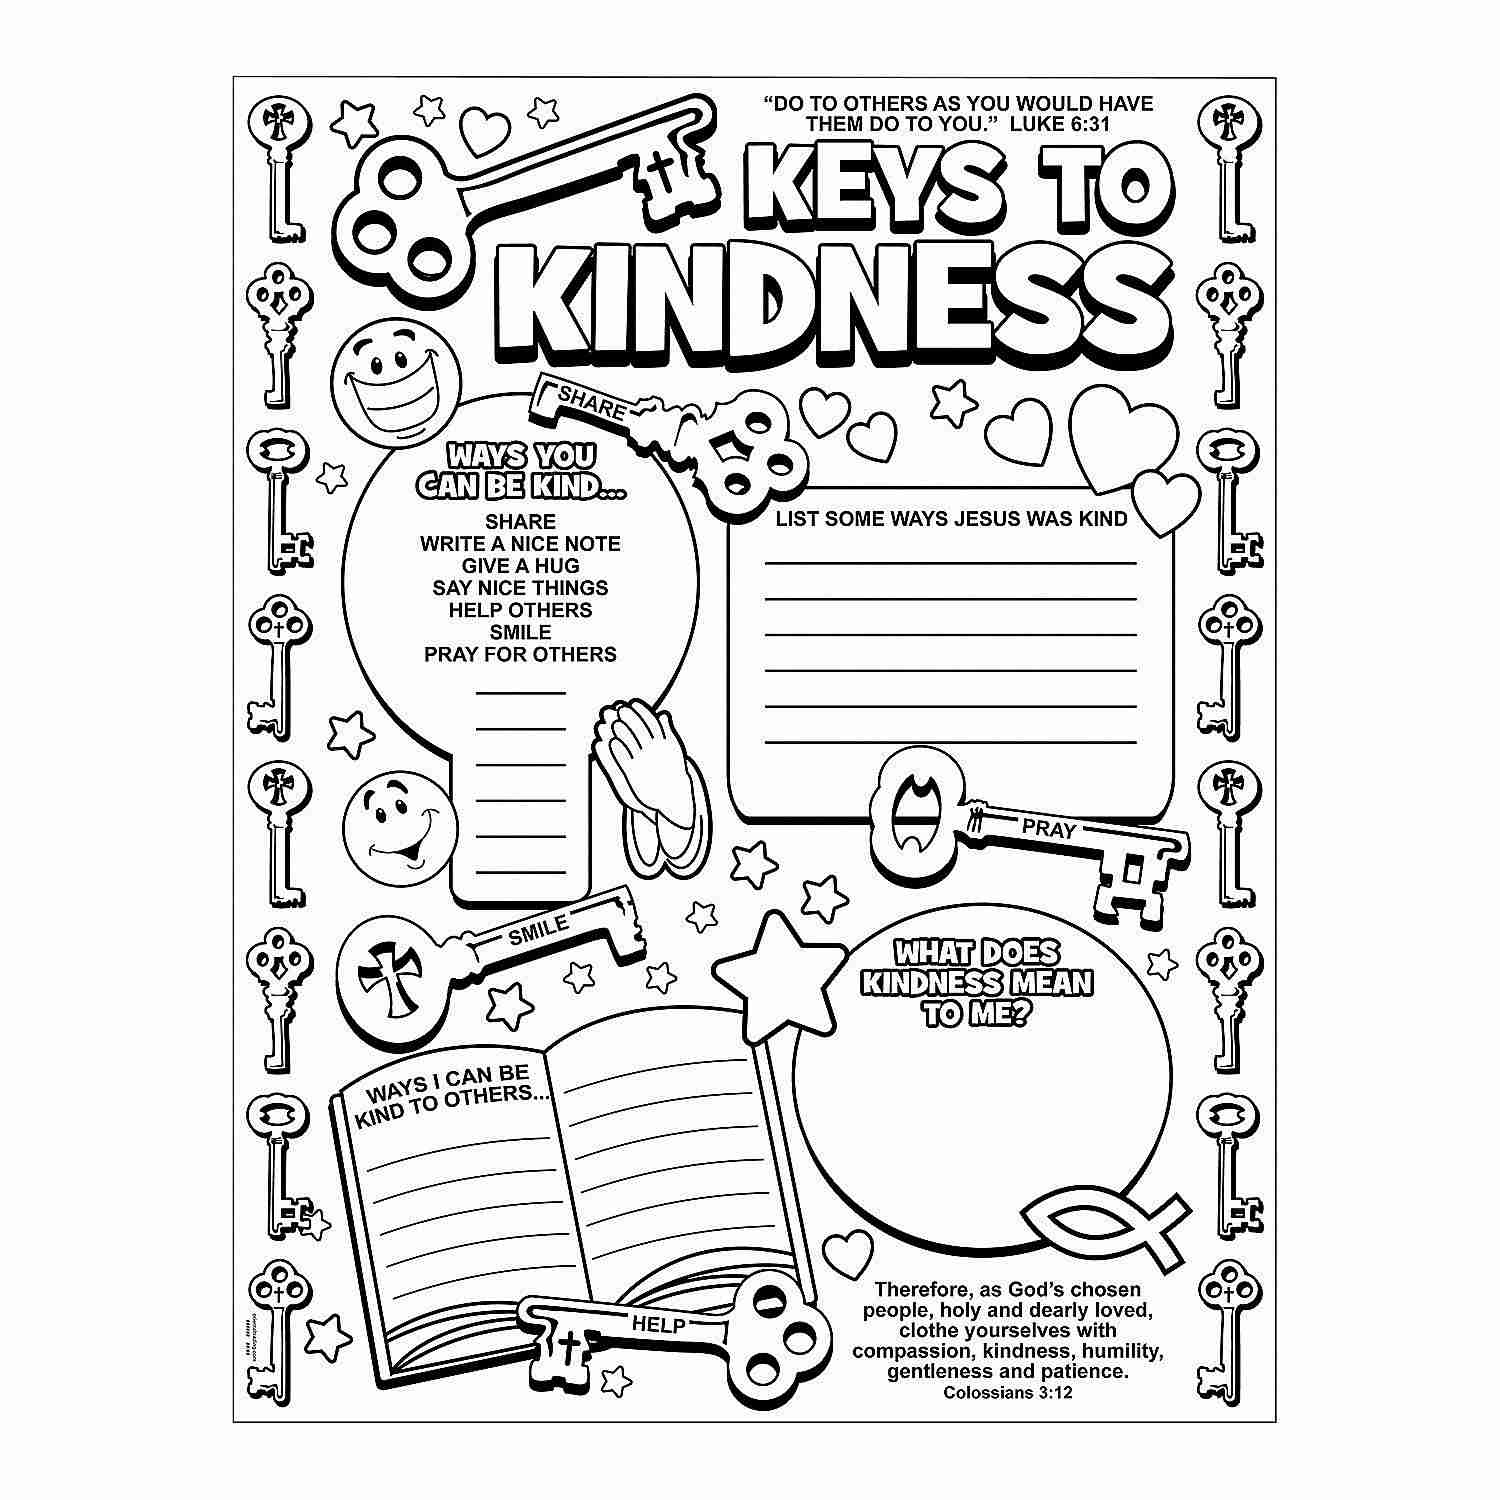 Kindness Coloring Pages Printable At Getdrawings Com Free For